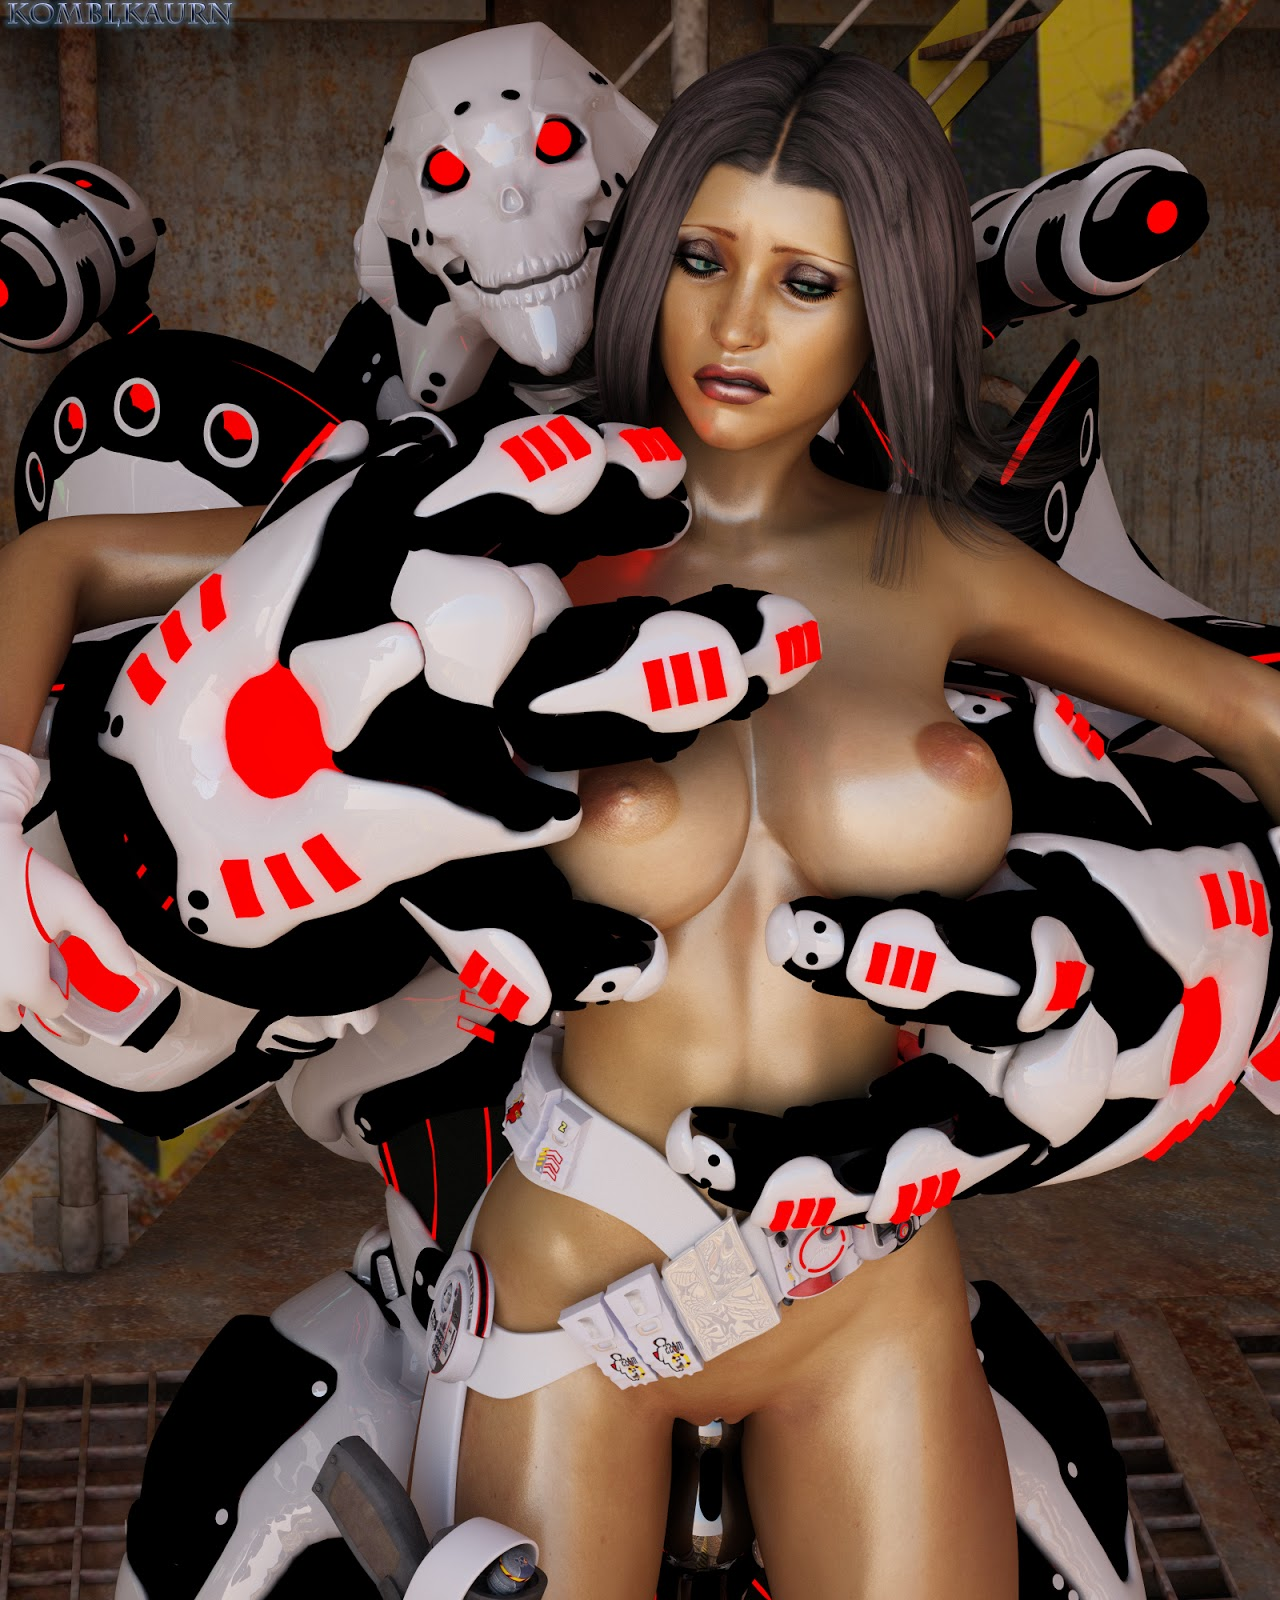 Rock monsters fucked robot girl sexy download